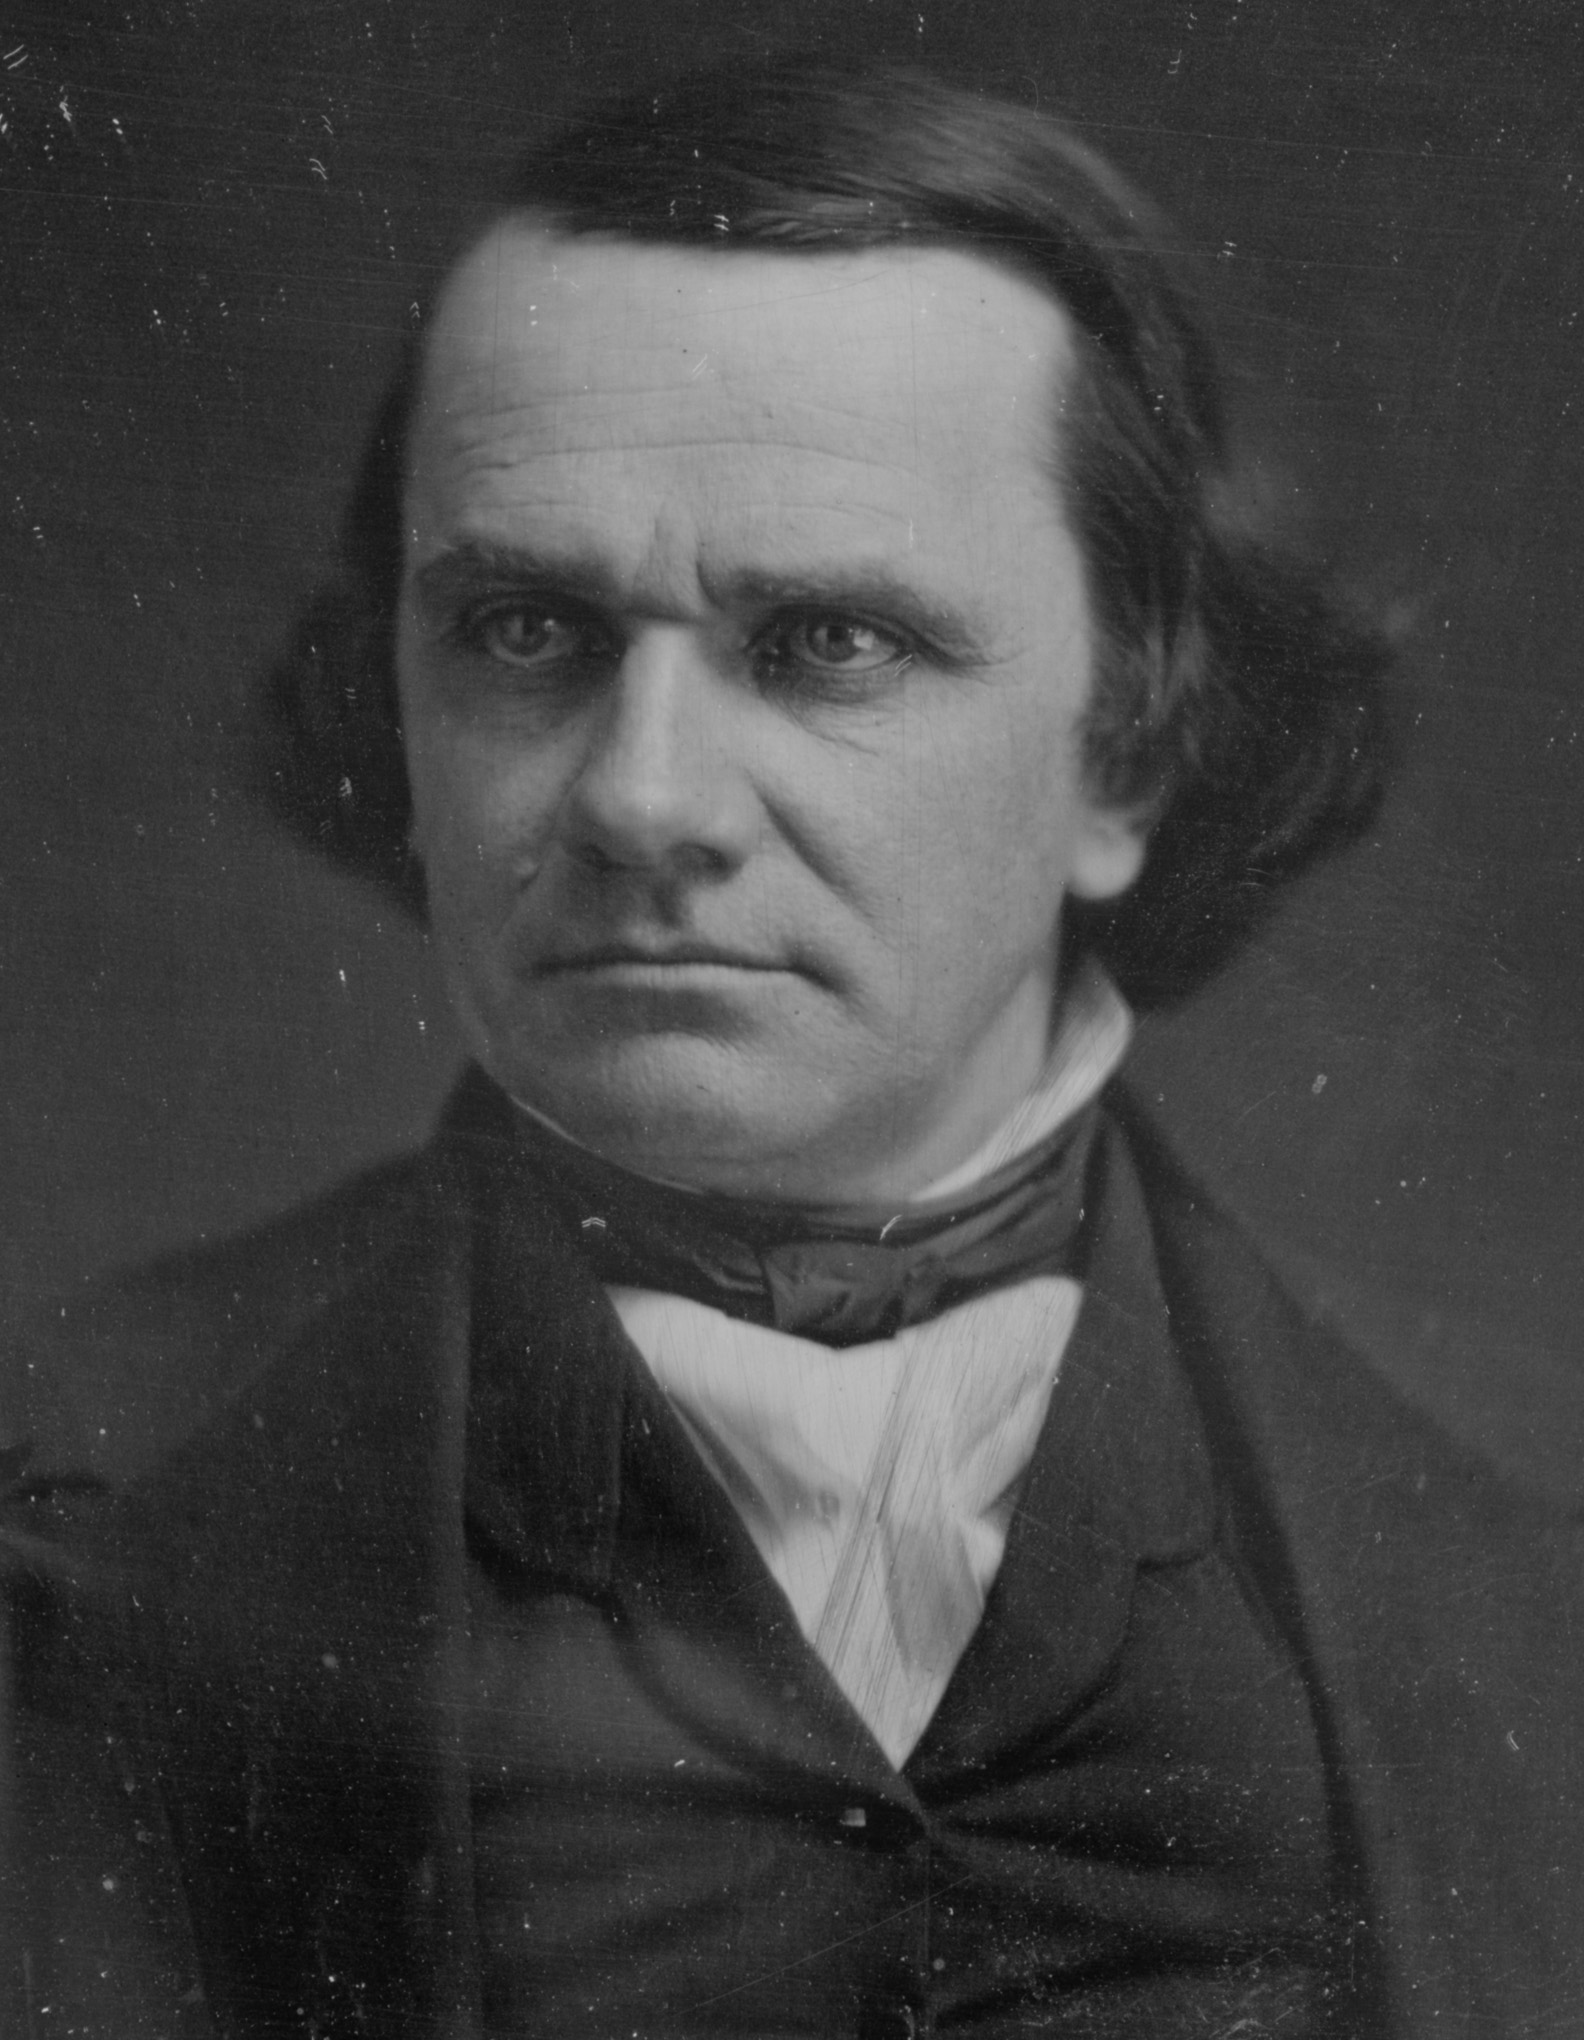 File:Stephen A Douglas - headshot.jpg - Wikipedia, the free ...